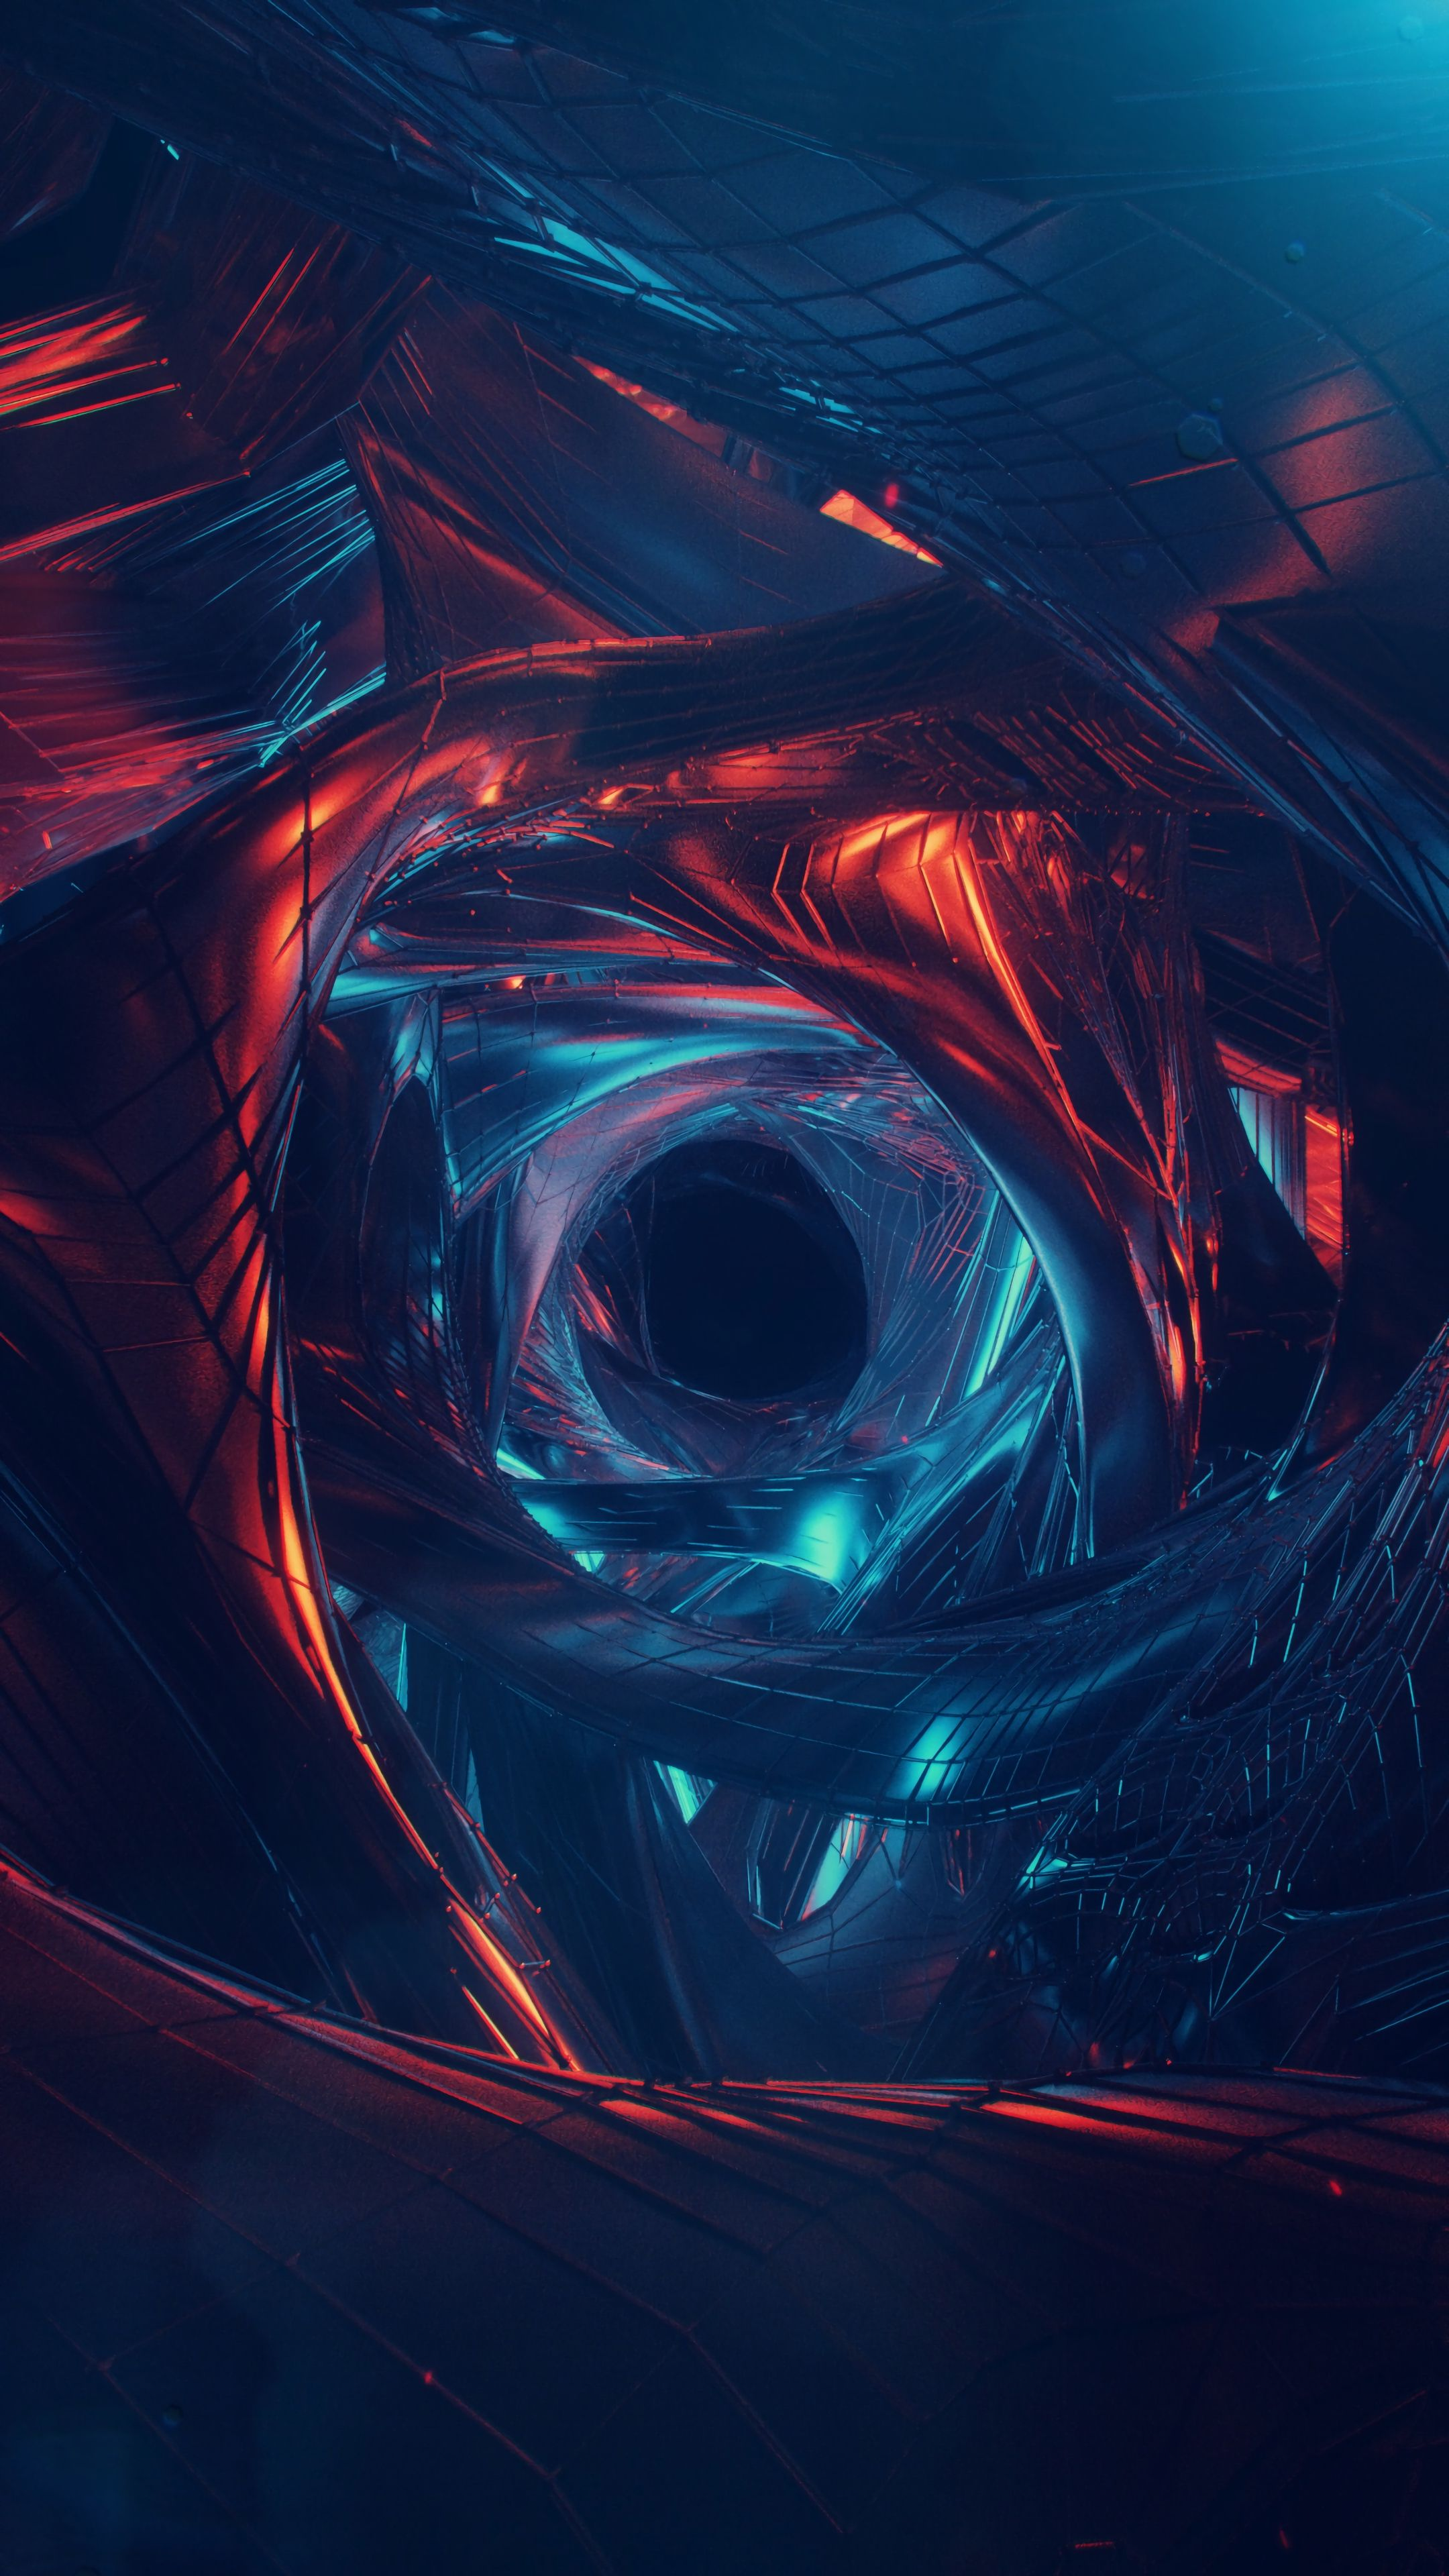 #Abstract #wormhole #art #visualization #wallpapers hd 4k background for android :) | Abstract ...